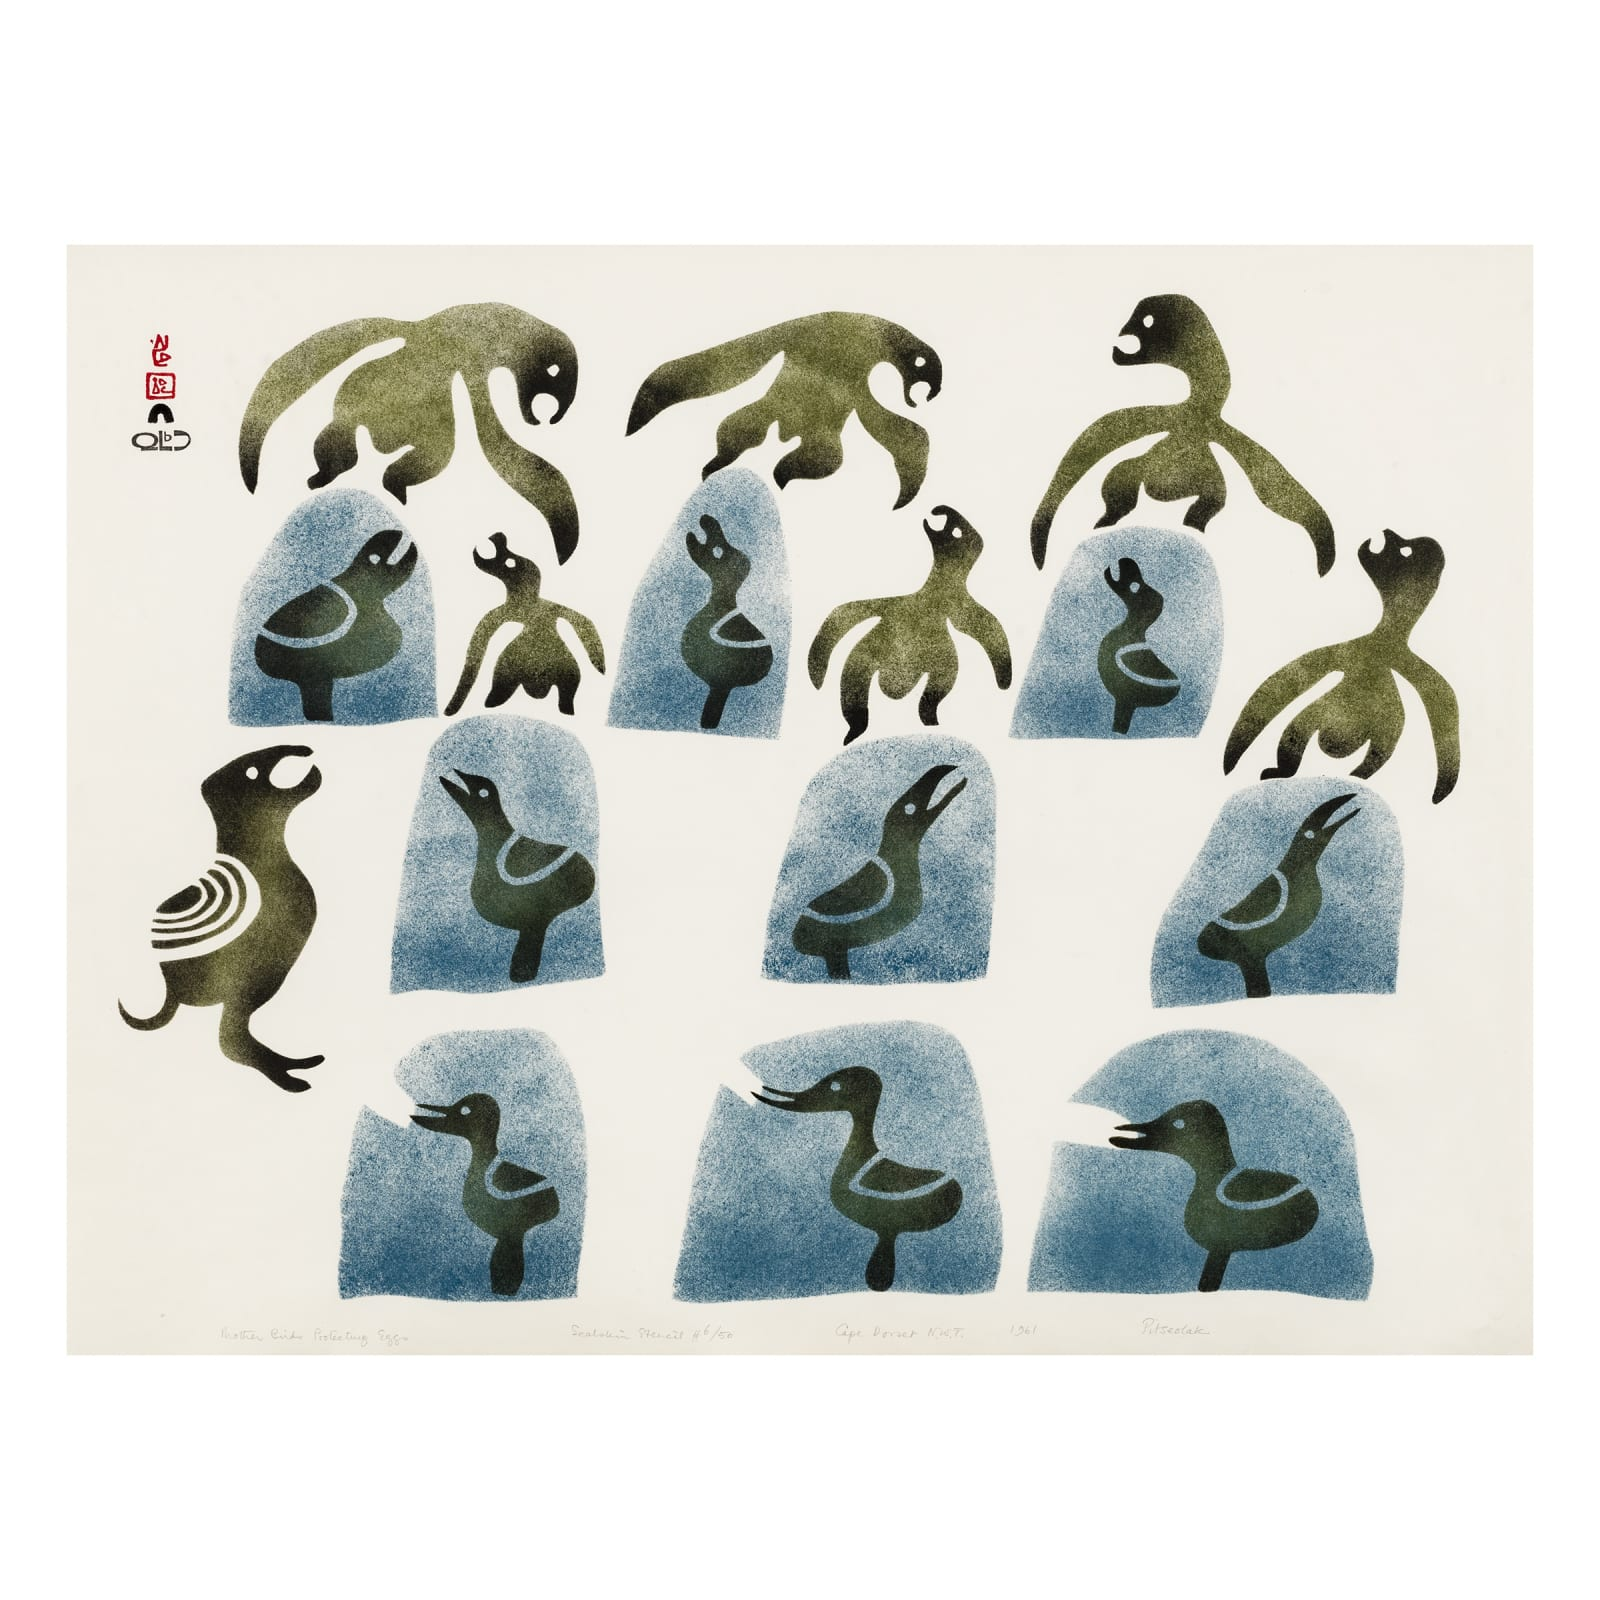 PITSEOLAK ASHOONA, O.C., R.C.A (1904-1983) KINNGAIT (CAPE DORSET) Mother Birds Protecting Eggs, 1961 REALIZED: $2,040